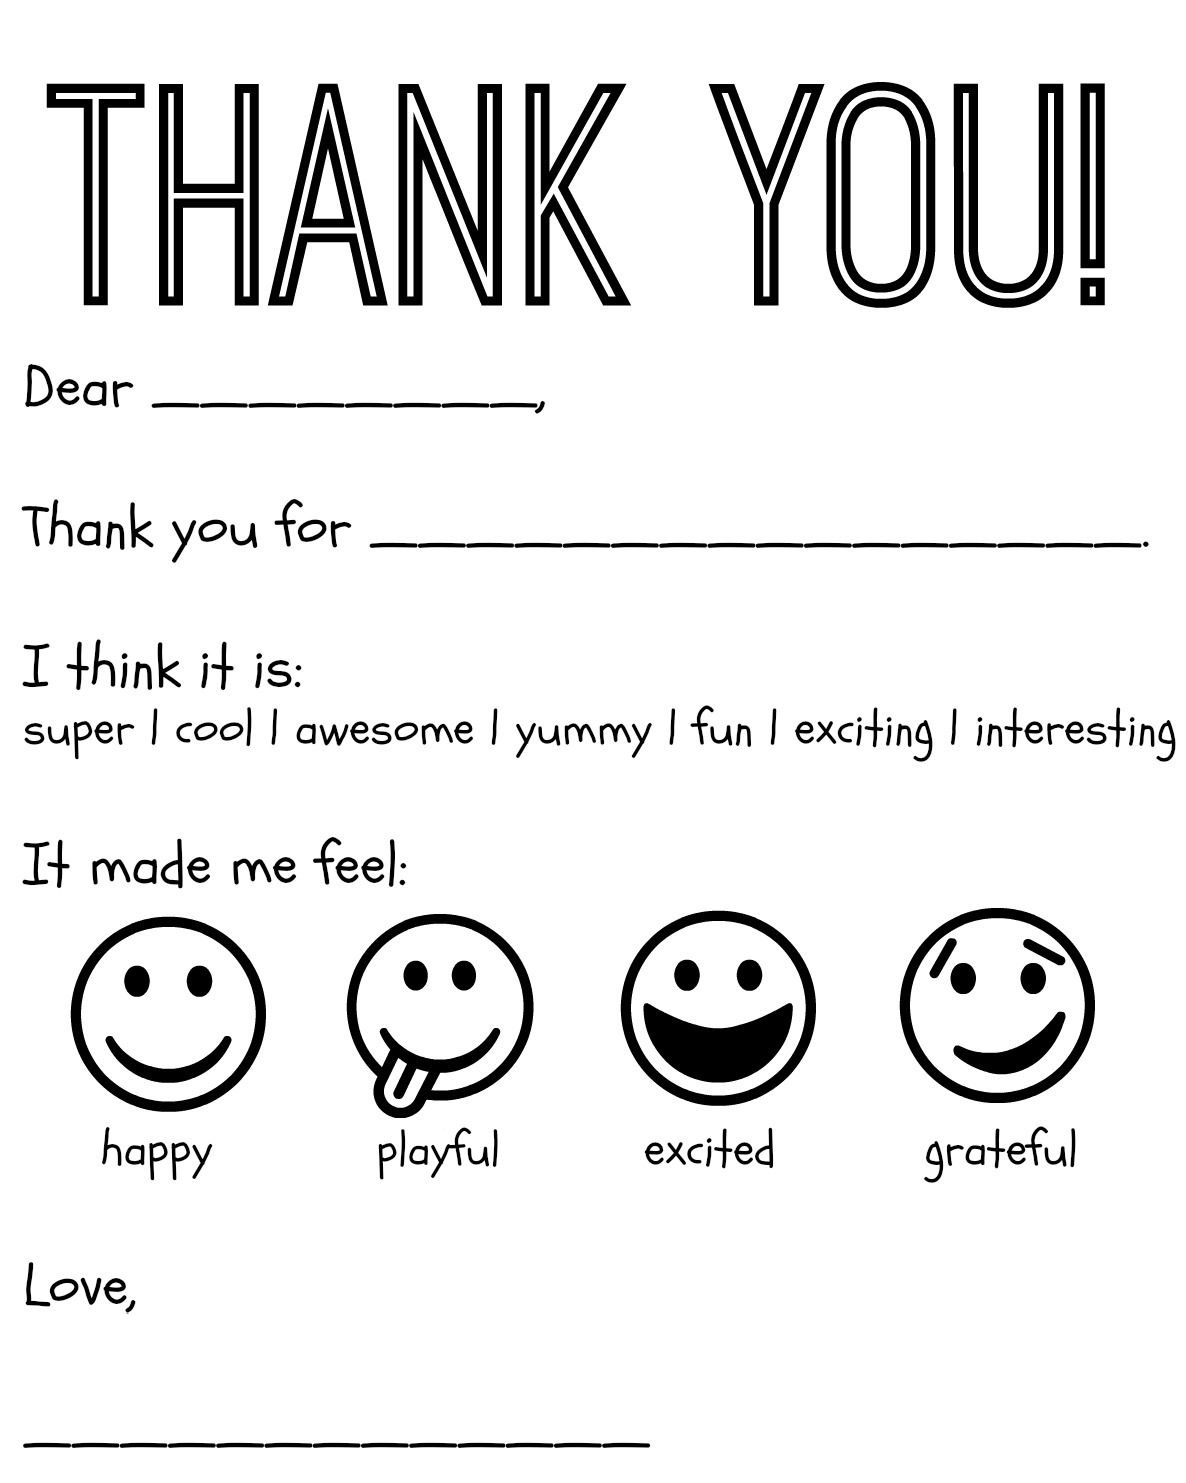 Free Printable Kids Thank You Cards To Color   Thank You Card - Free Printable Thank You Cards For Soldiers